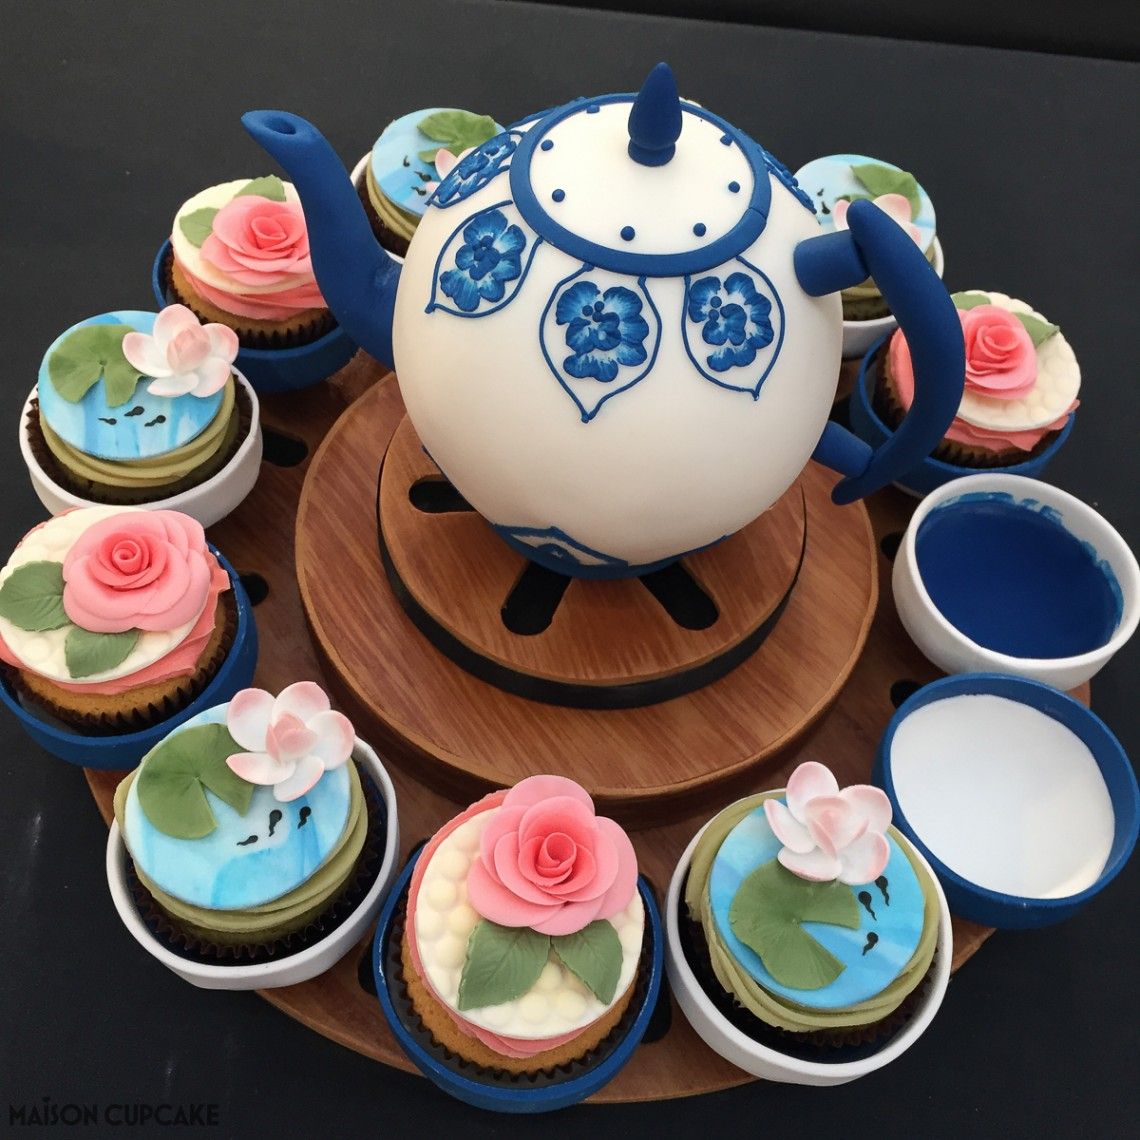 Teapot with floral cupcakes